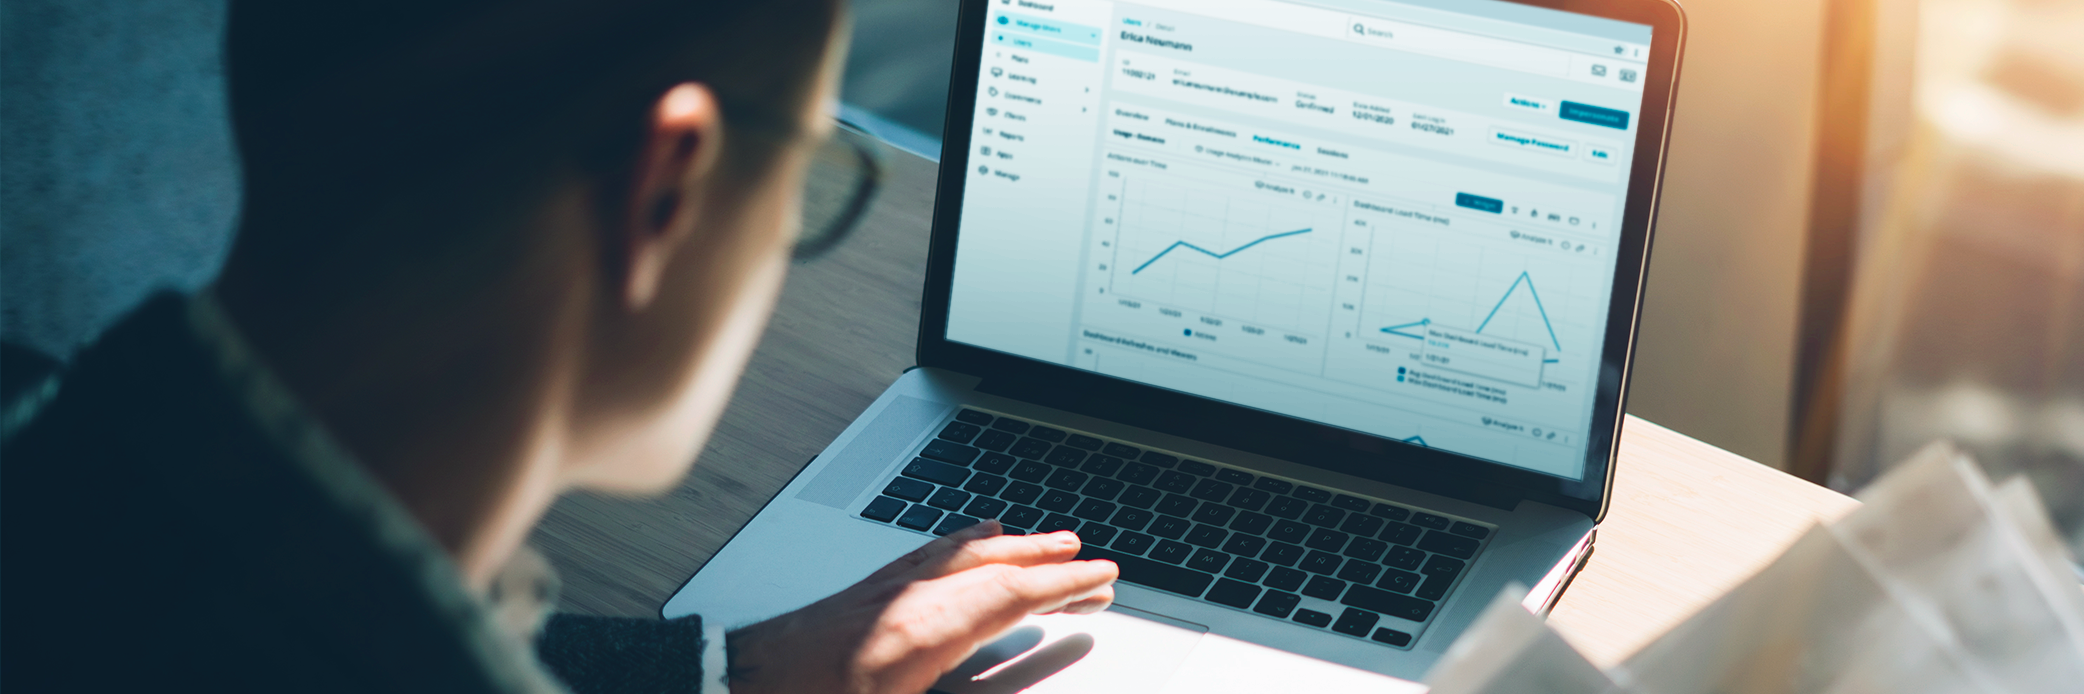 Data for Professional Test Prep: Does Your LMS Give You What You Need?